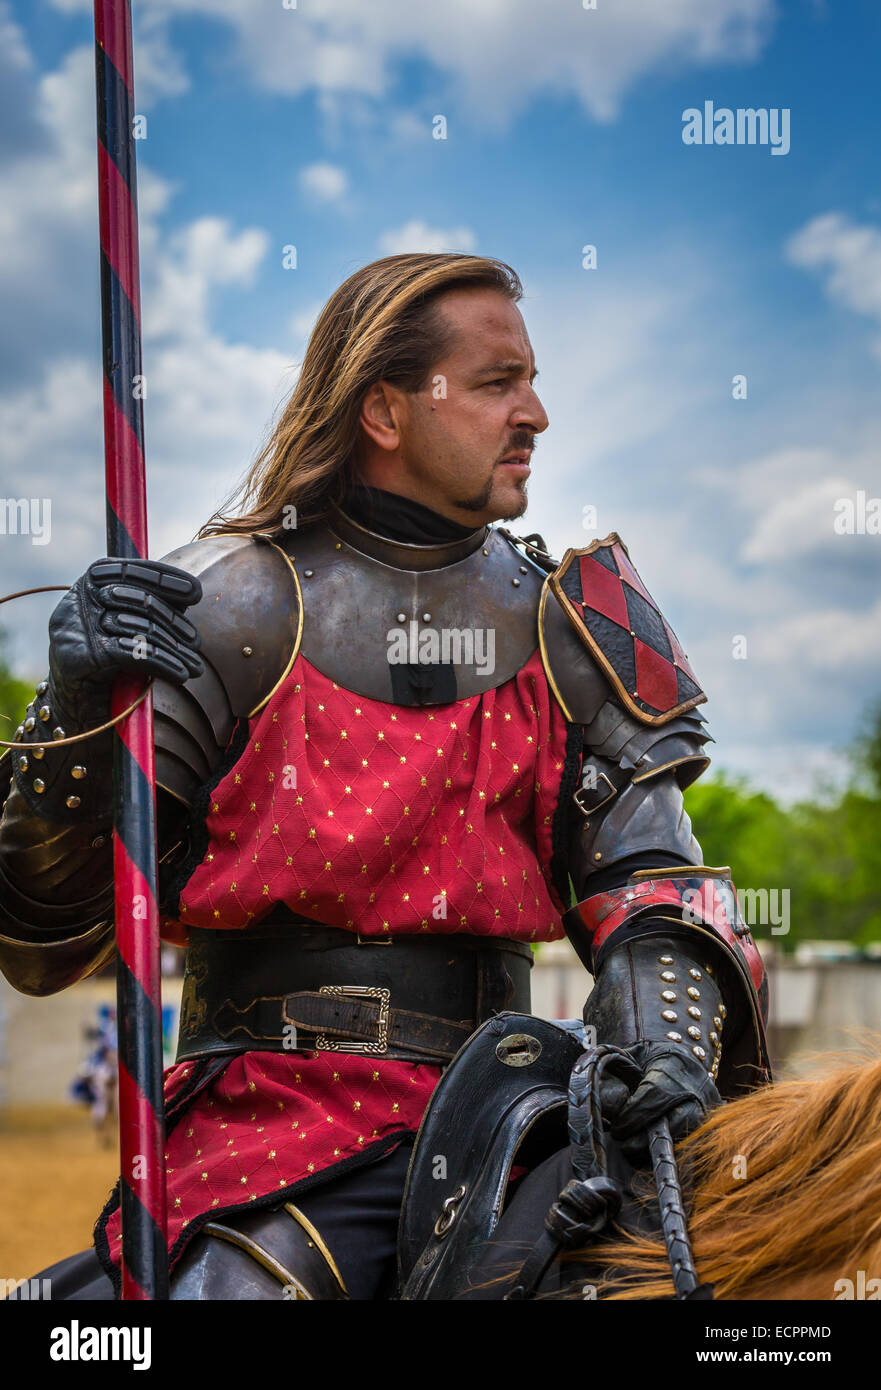 Scarborough Renaissance Festival, more commonly known as Scarborough Faire, is a renaissance fair in Waxahachie, - Stock Image